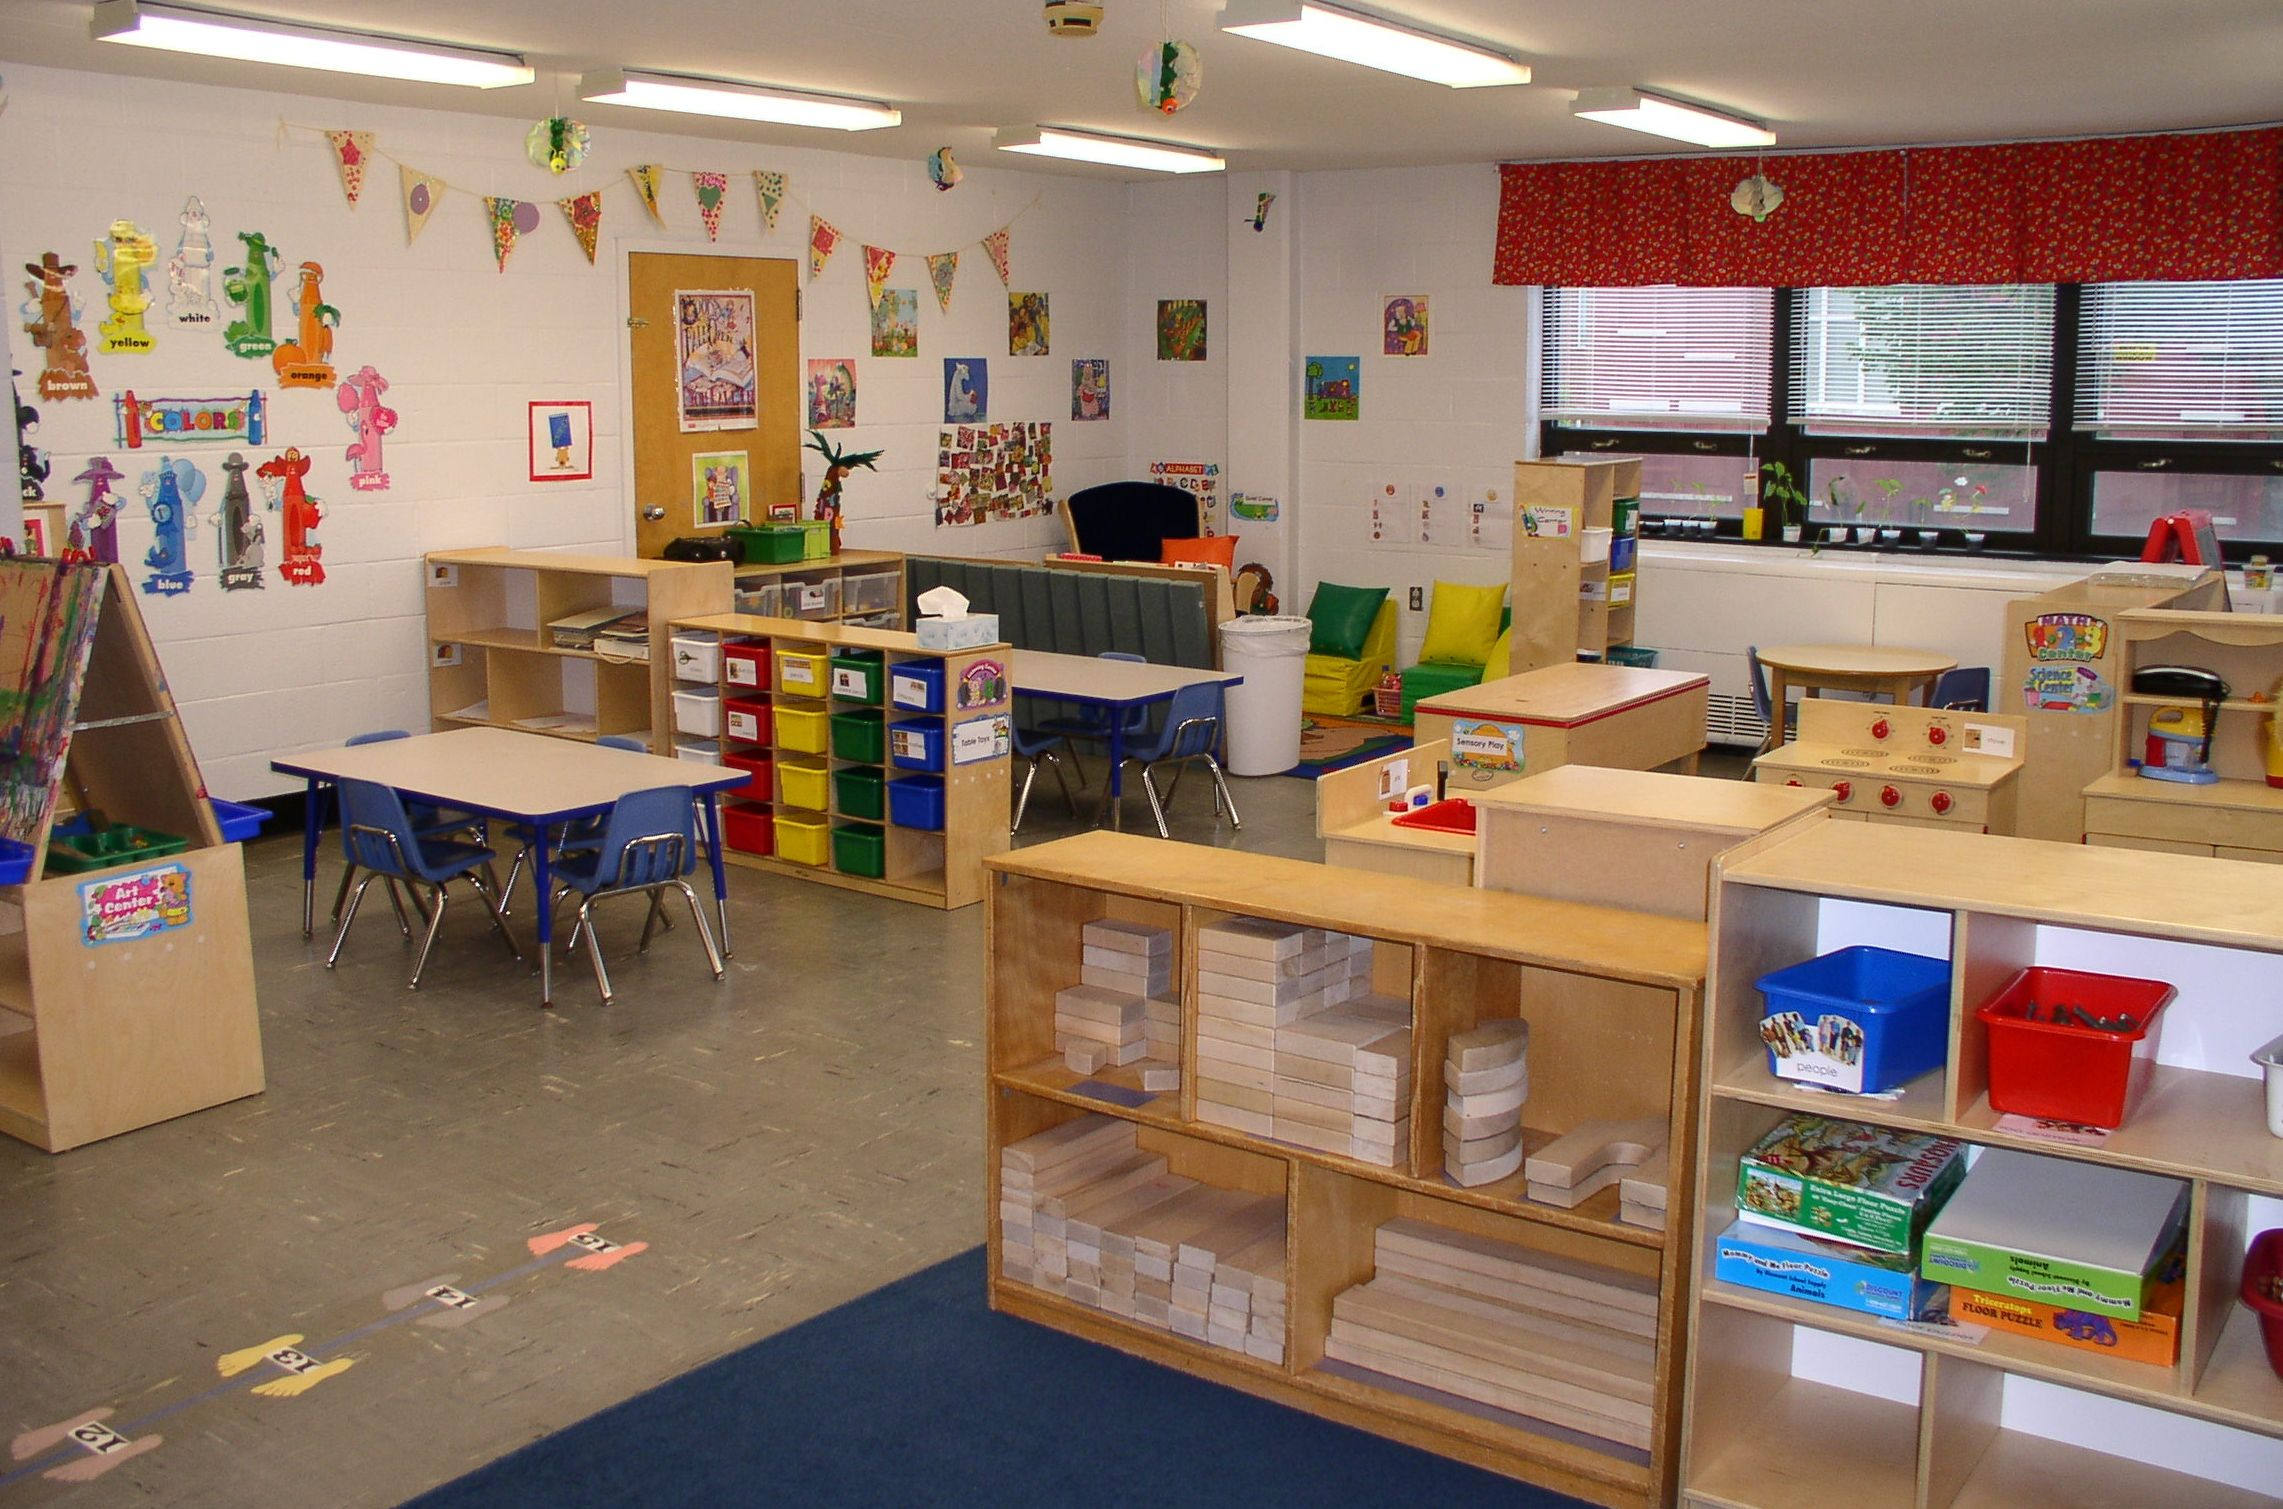 Classroom Design For Kinder : Ywca elmira nice layout classroom designs for